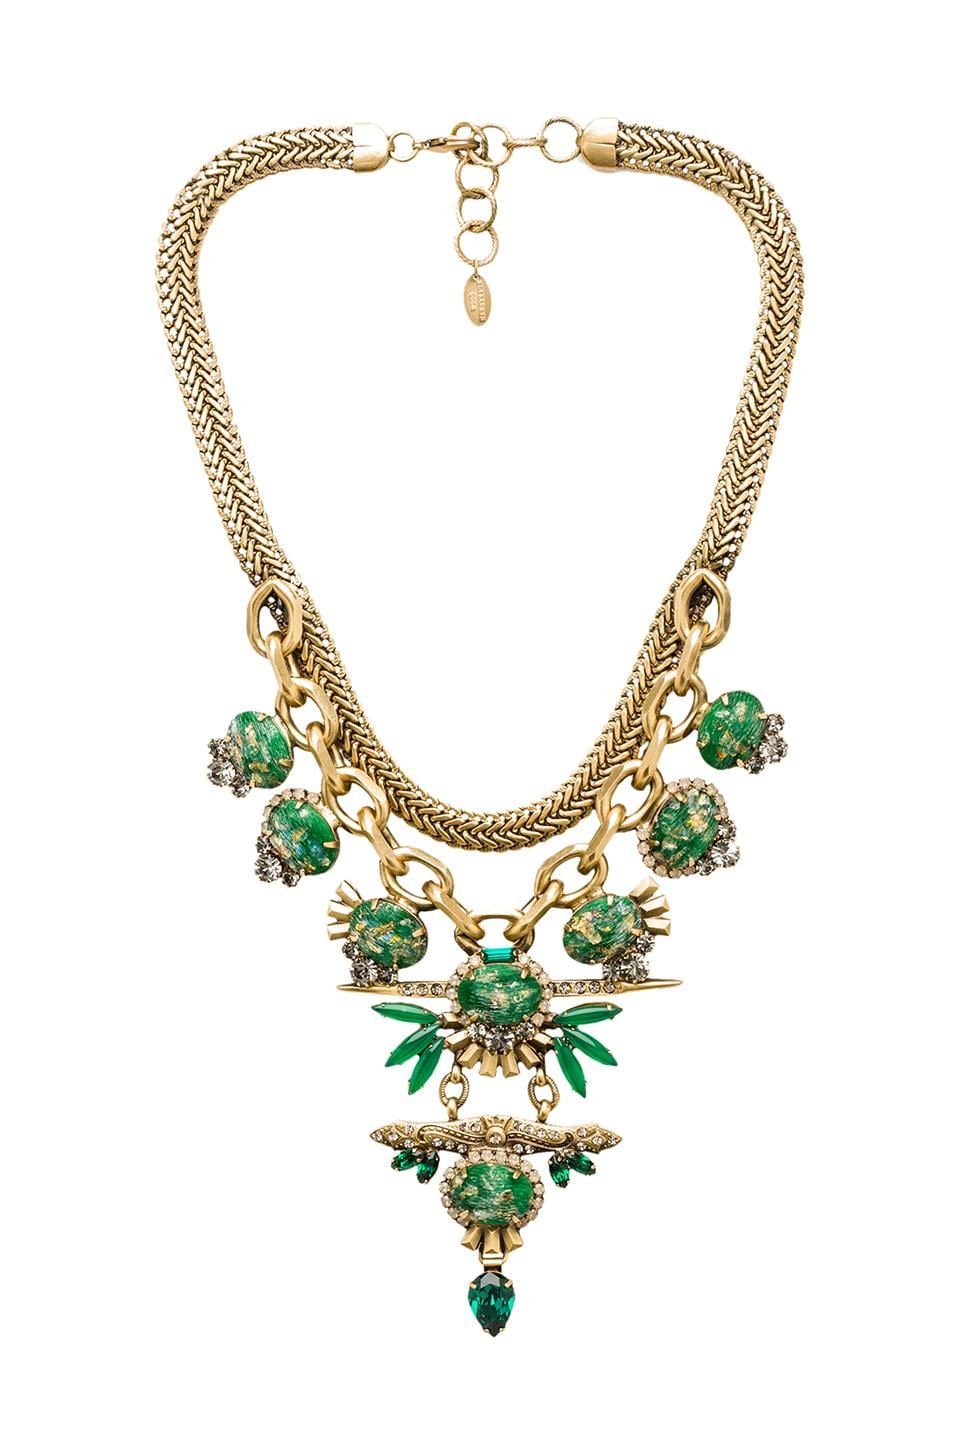 Elizabeth Cole Necklace in Green Speckled Stone